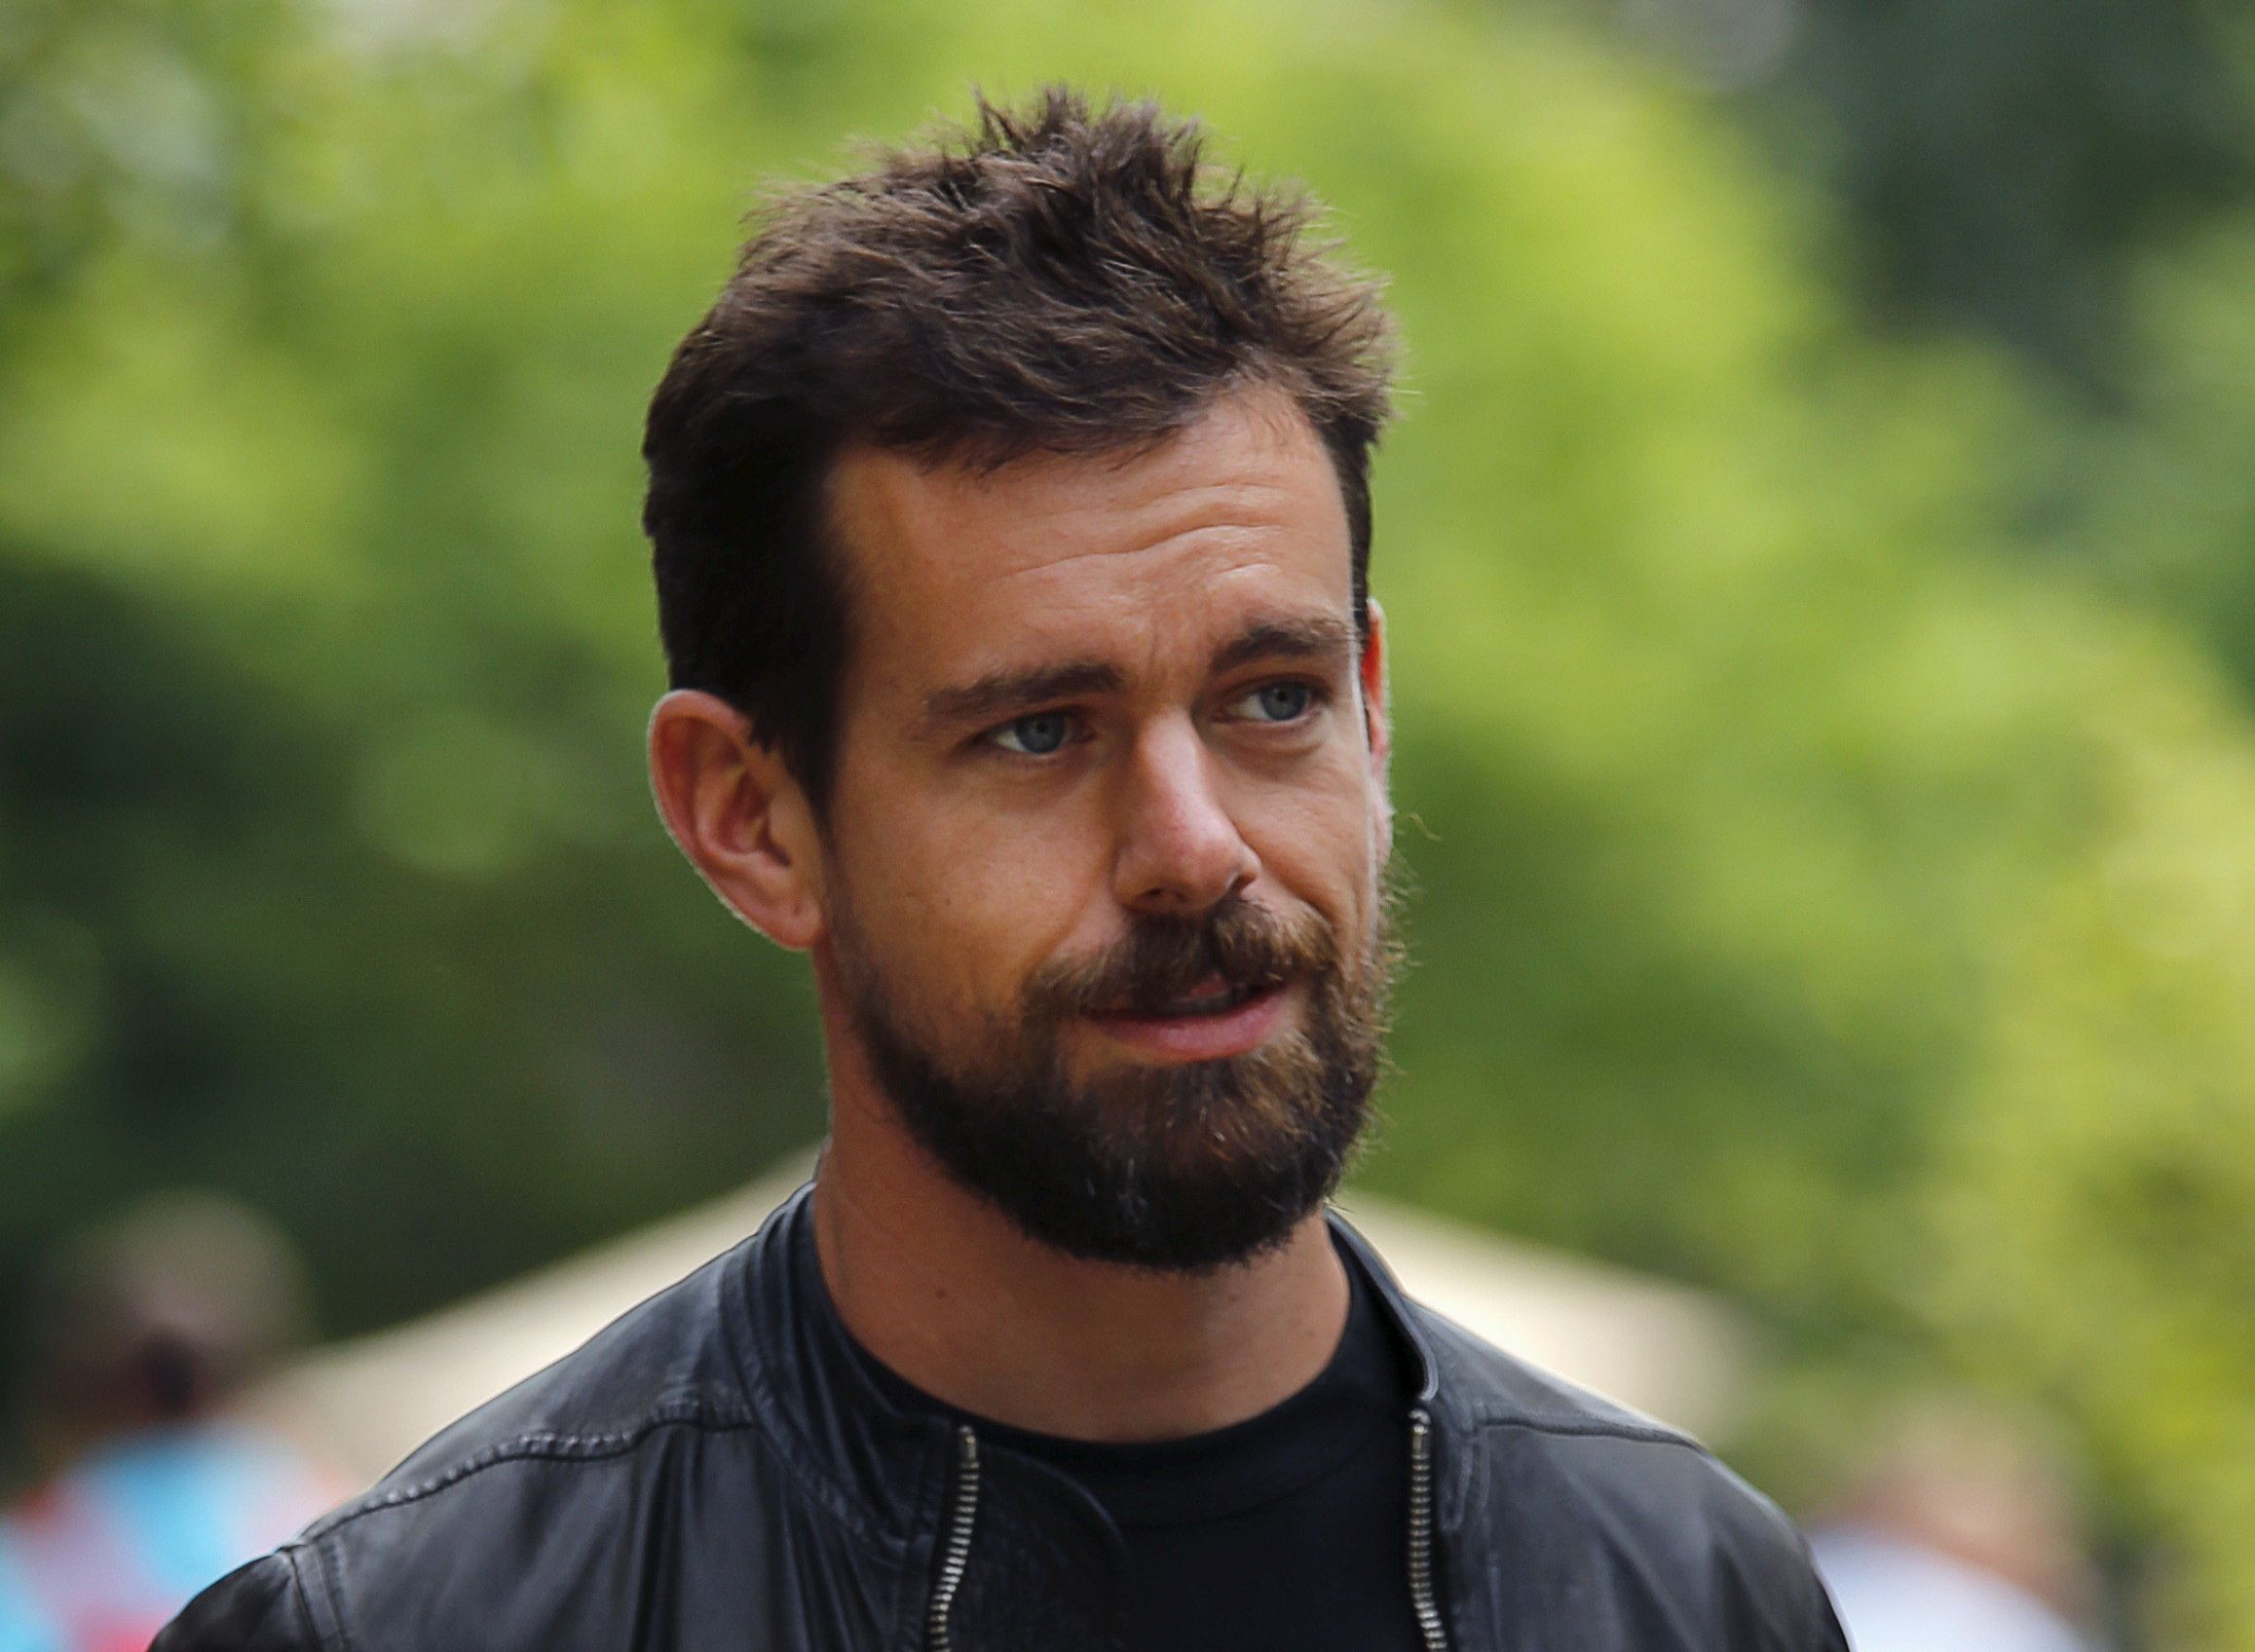 """Twitter CEO Jack Dorsey said that """"accounts like Jones' can often sensationalize issues and spread unsubstantiate"""